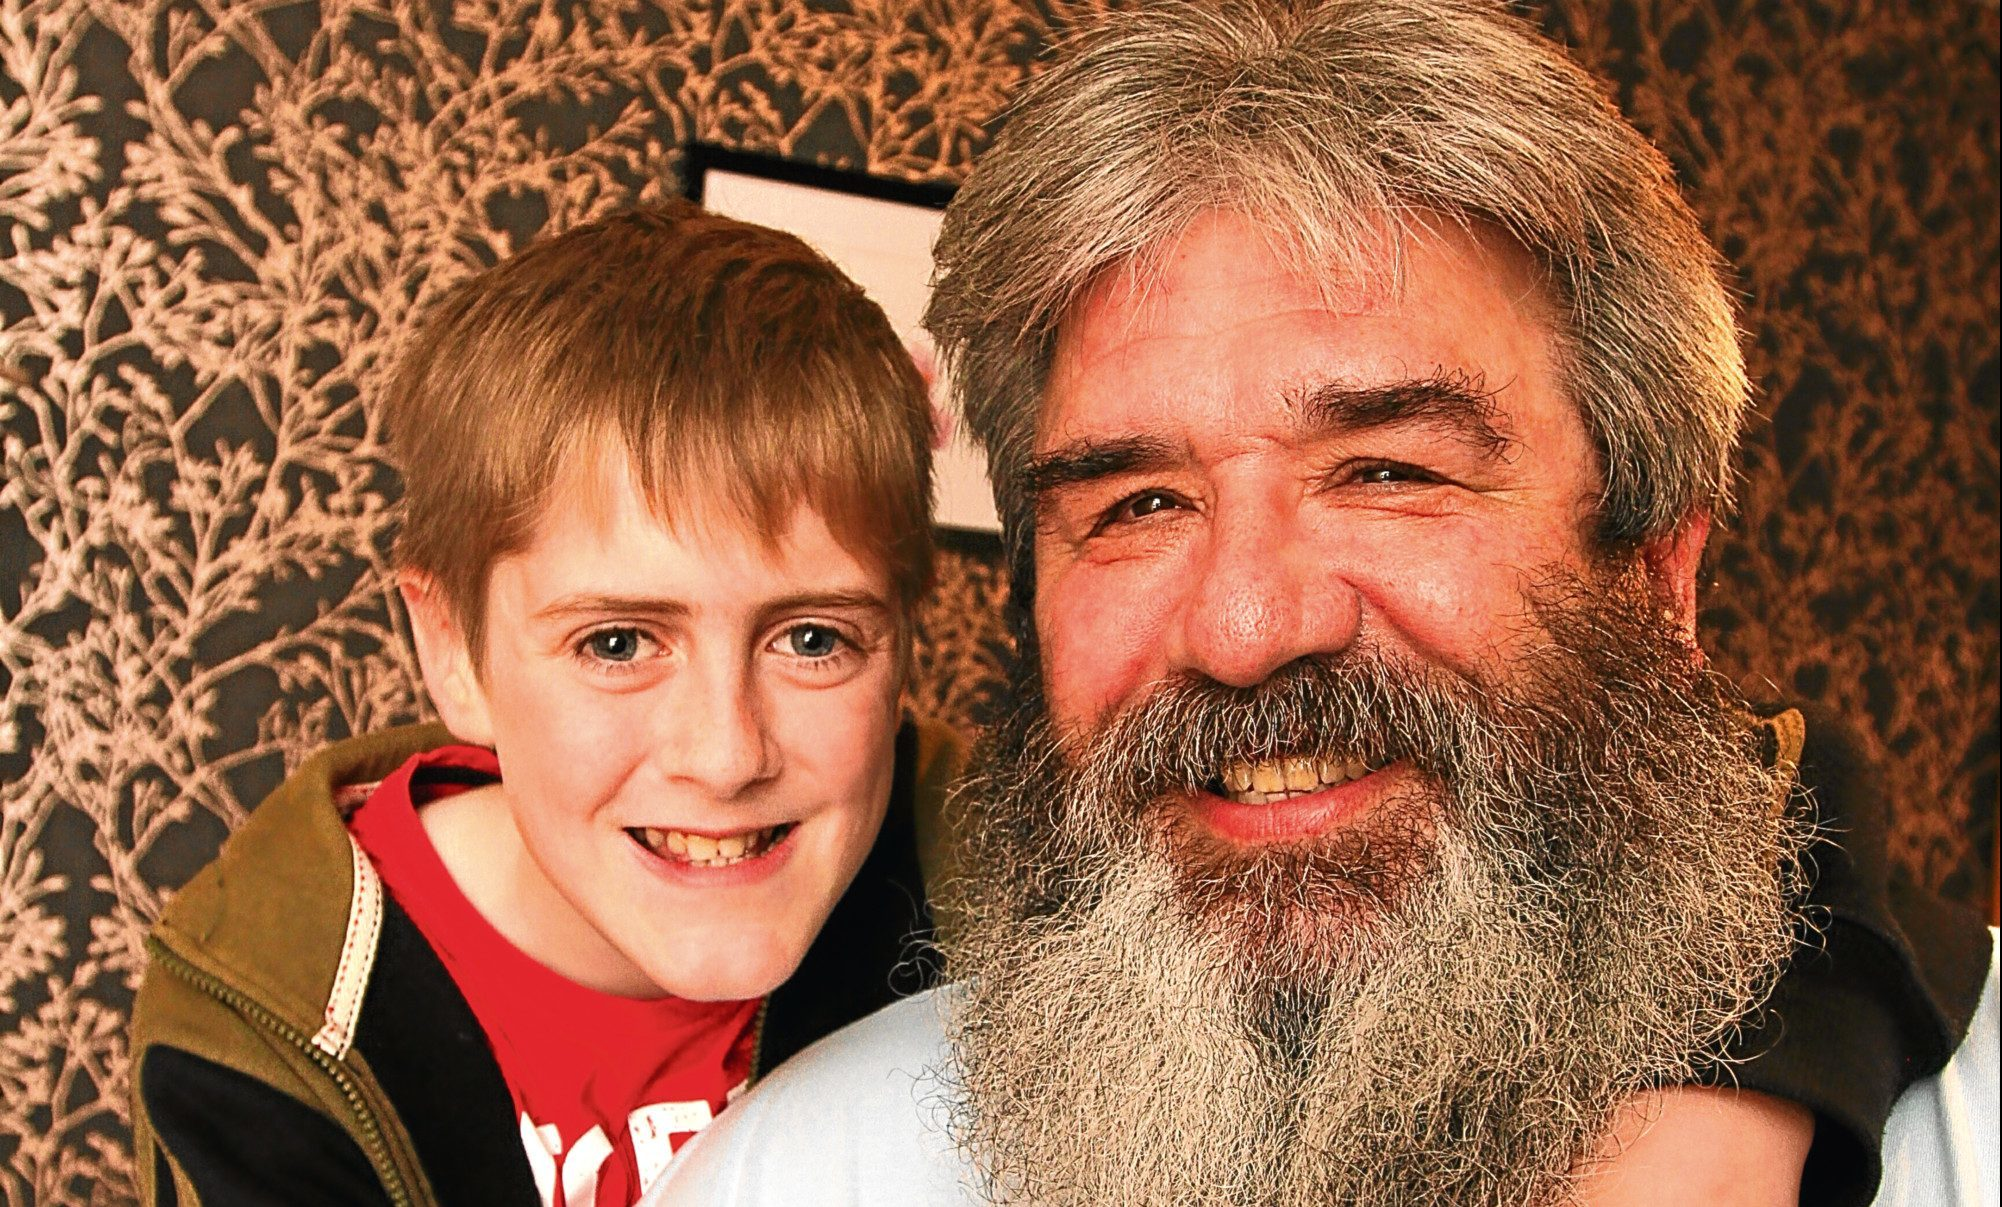 Nathan with his grandad Nick (55), who has been growing a beard to raise money